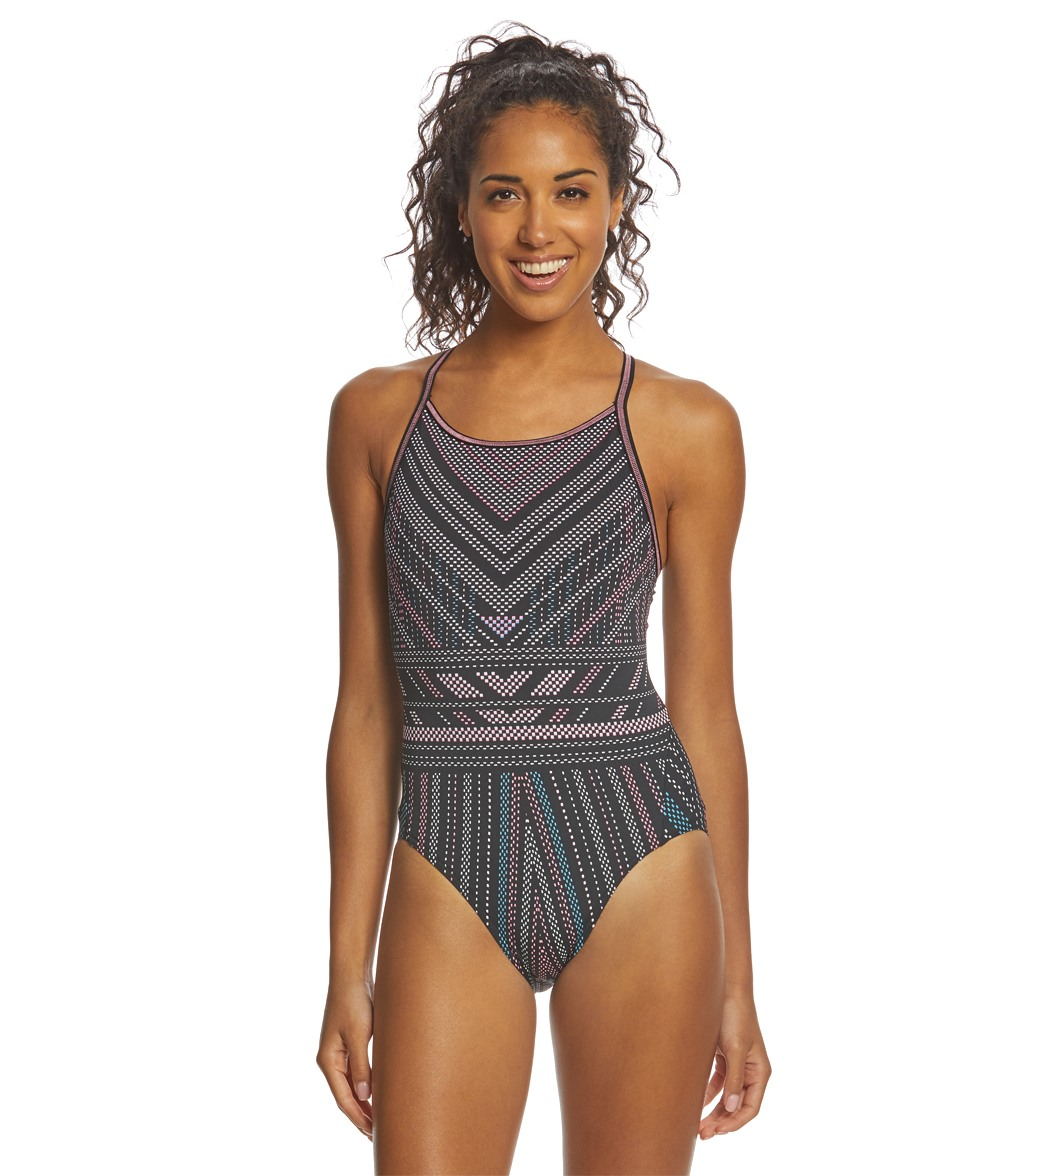 50dad23392917 Funkita Women's Stitched Up Diamond Back One Piece Swimsuit at  SwimOutlet.com - Free Shipping